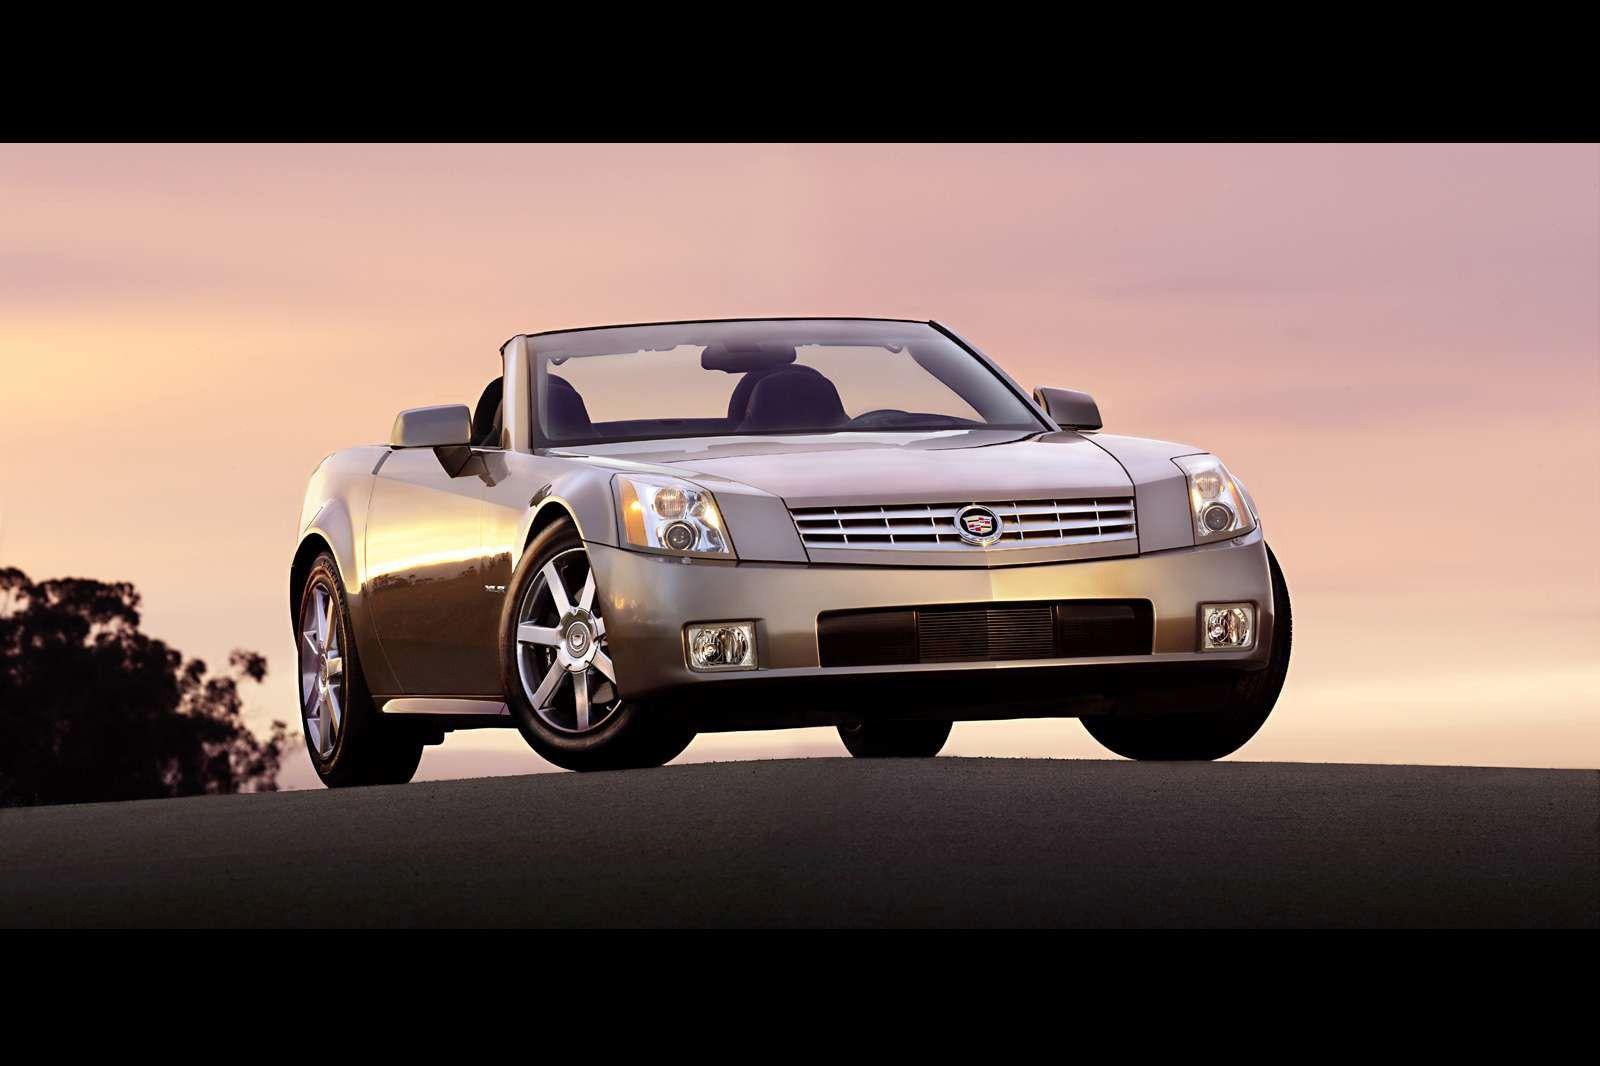 2006 Cadillac XLR   General Motors Corporation